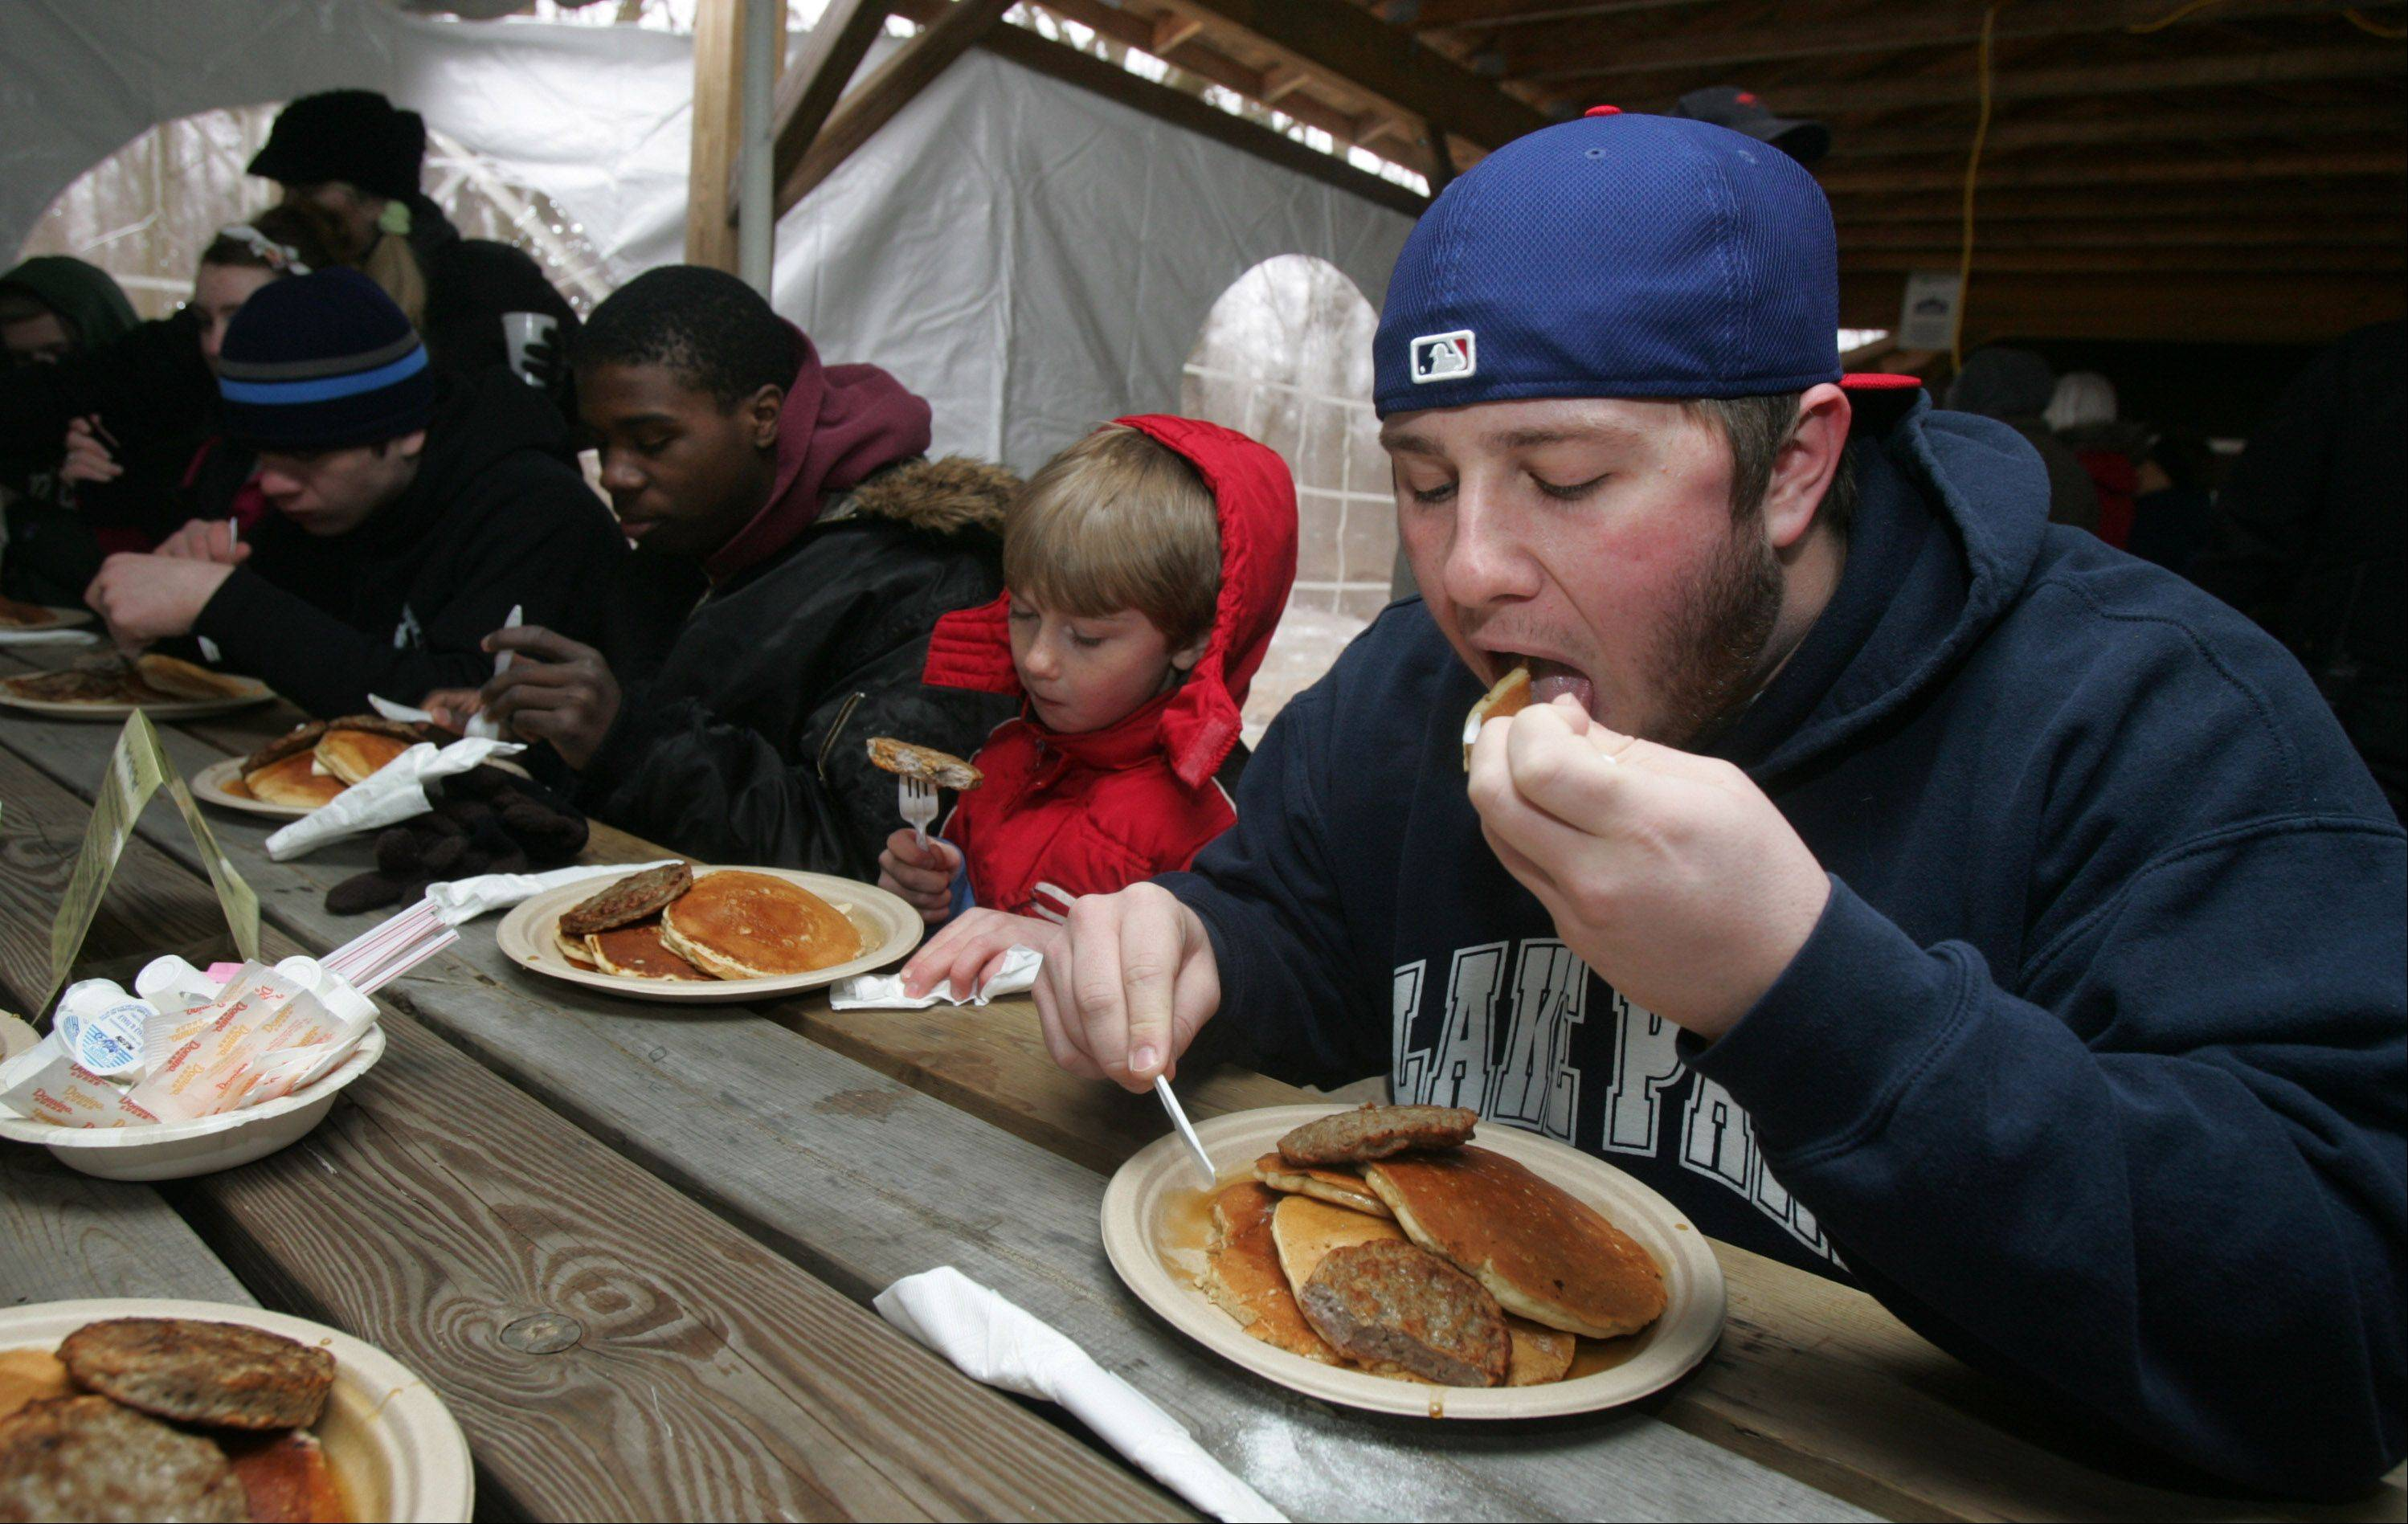 Cole Sheeks, 19, right, Landon Sheeks, 7, and Delvon Moneyham, 19, eat pancakes during the 29th Annual Sugar Bush Fair Sunday at the Spring Valley Nature Center in Schaumburg. The event featured a pancake breakfast with maple syrup, demonstrations of maple syrup production and hayrides.